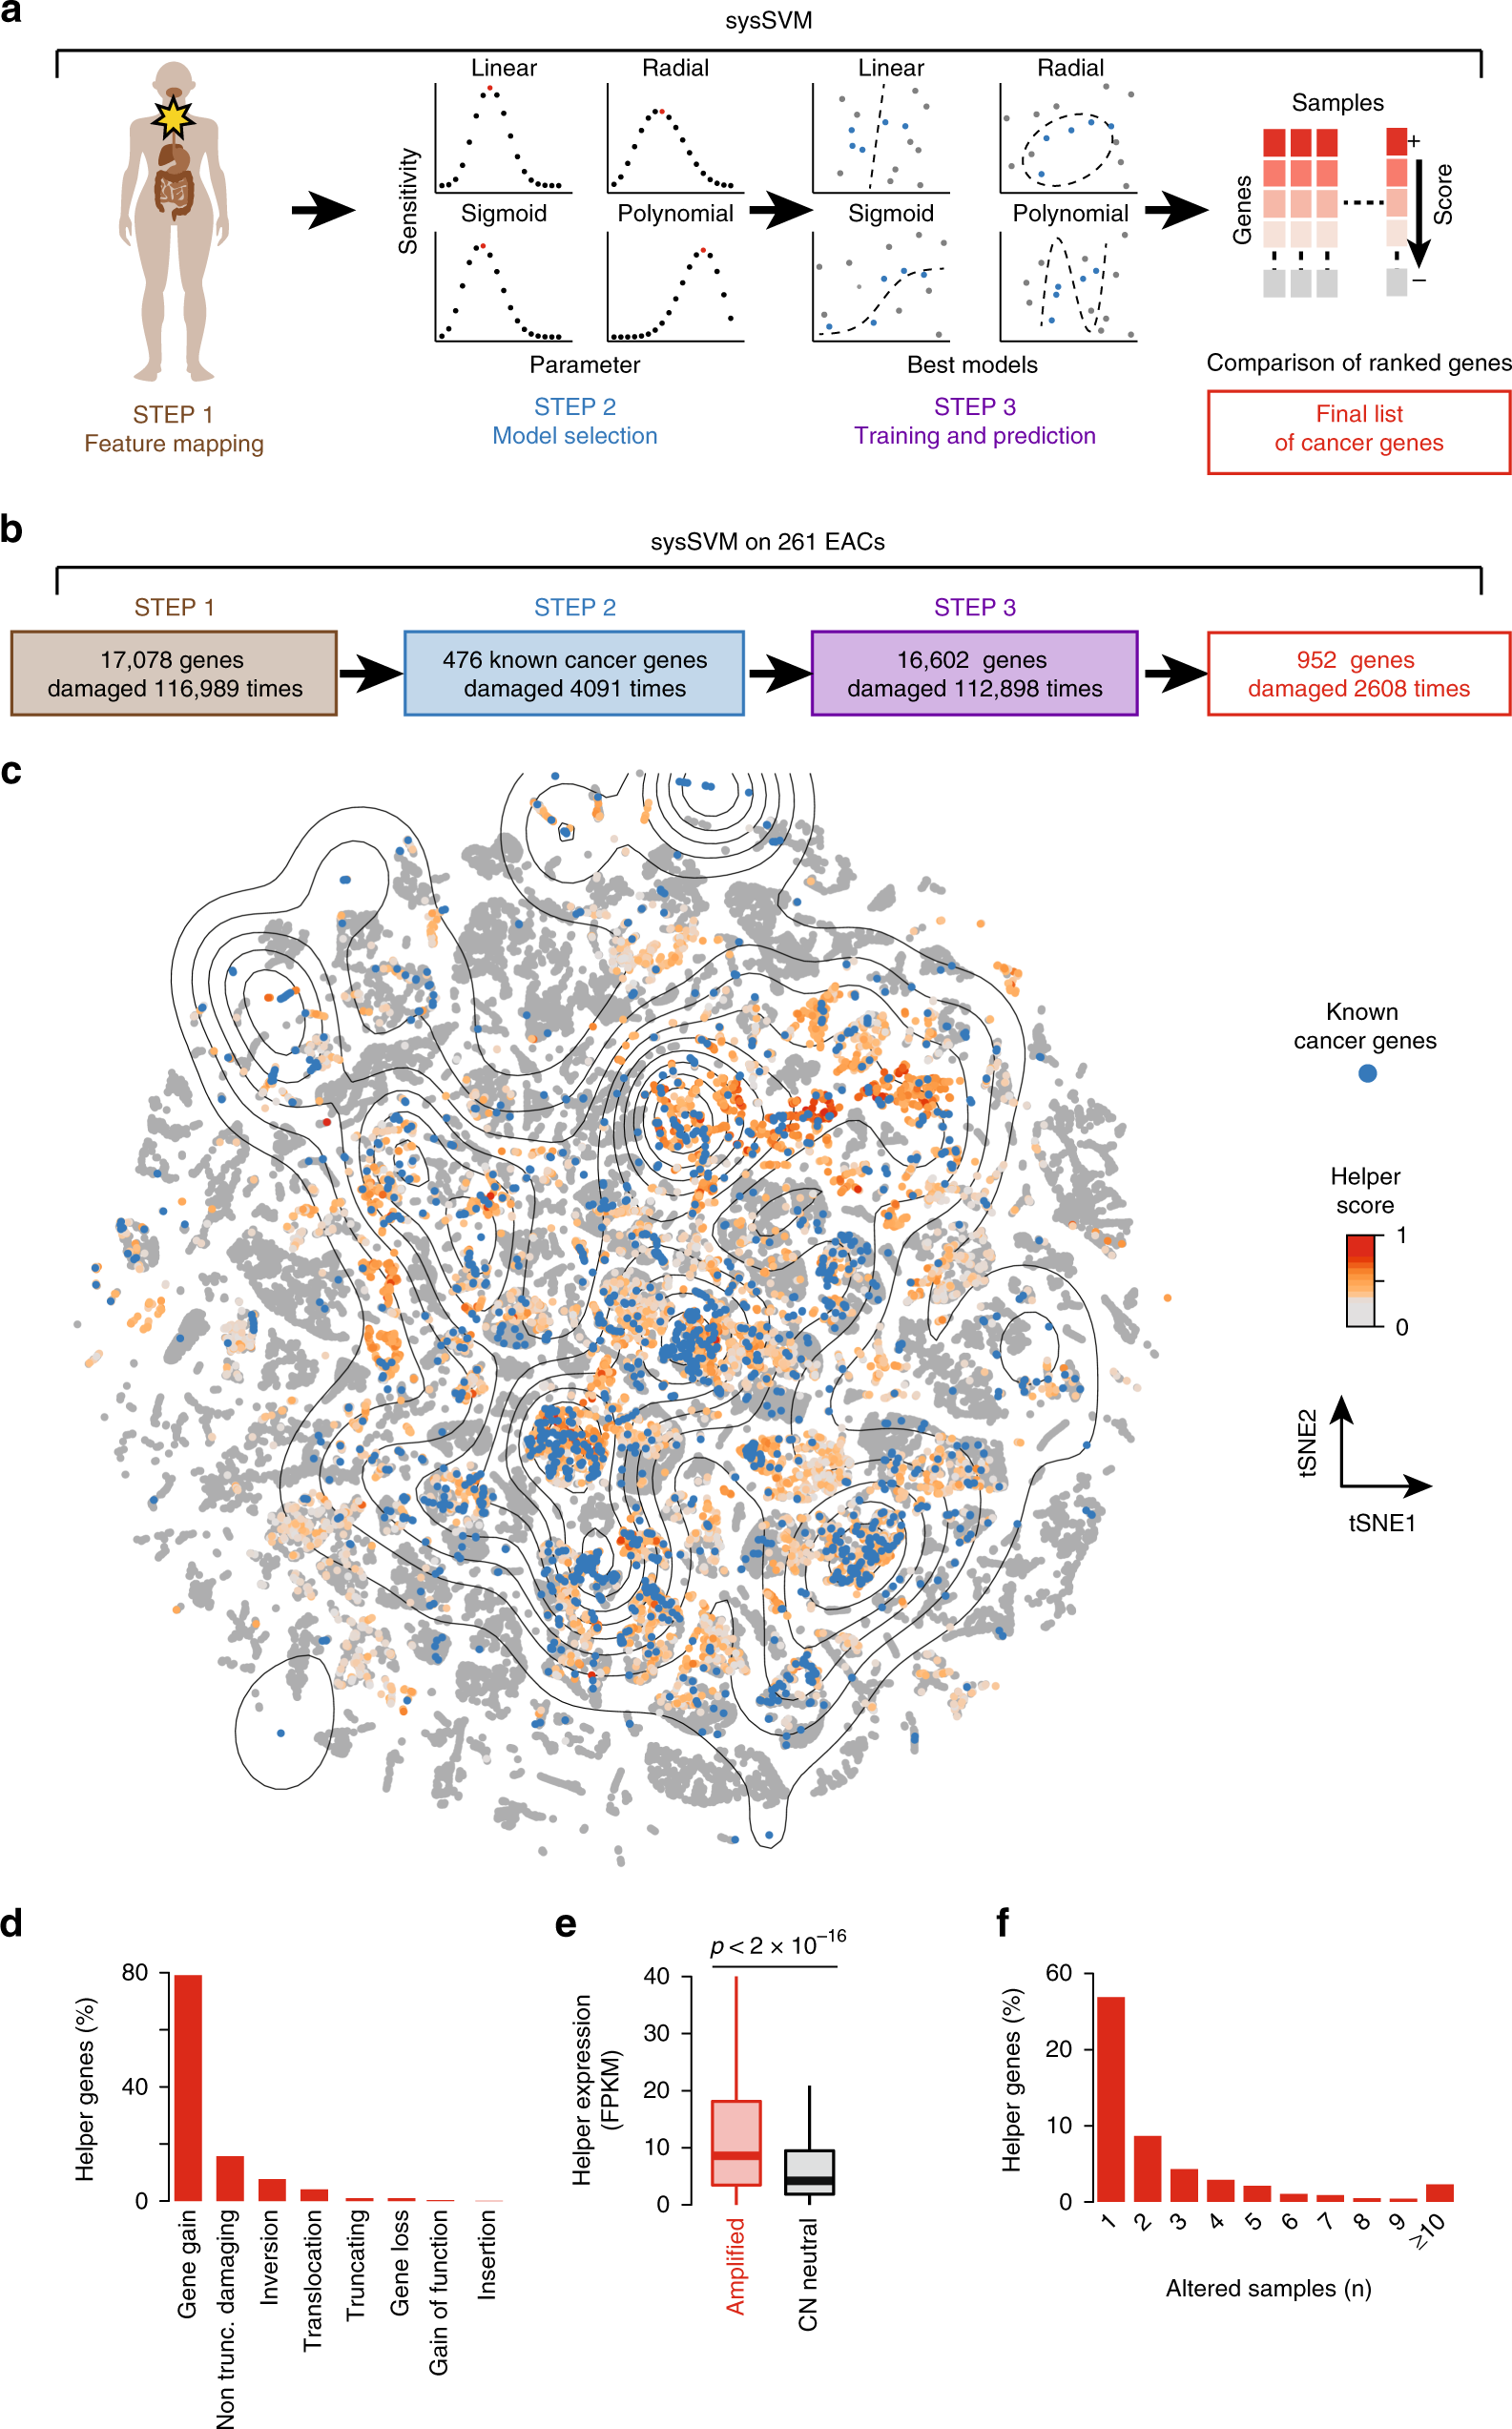 Cancer Gene Twice As Likely To Be >> Patient Specific Cancer Genes Contribute To Recurrently